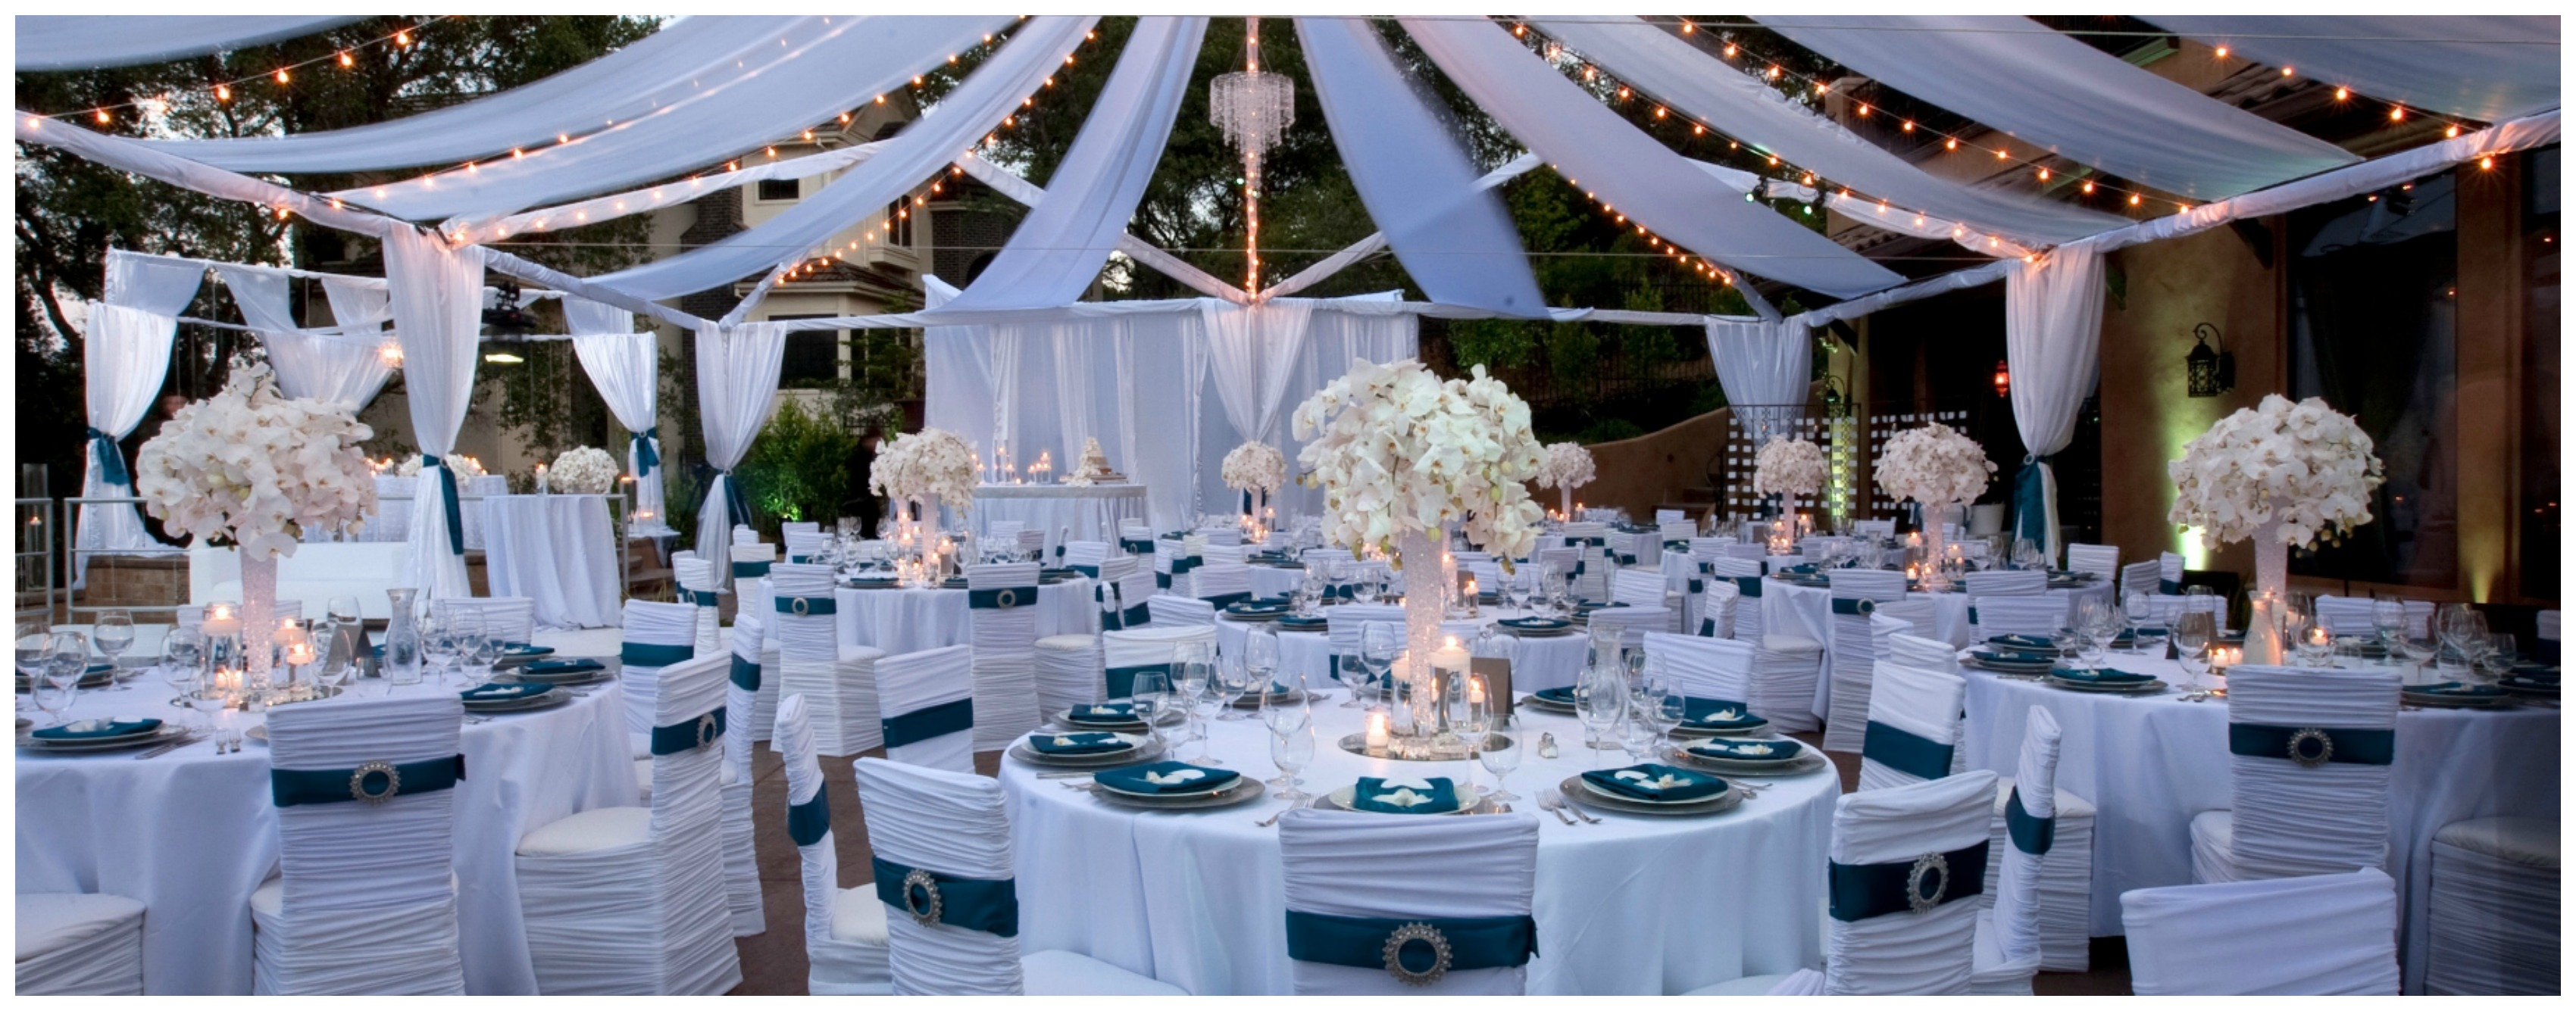 extravagant backyard wedding fearon may events